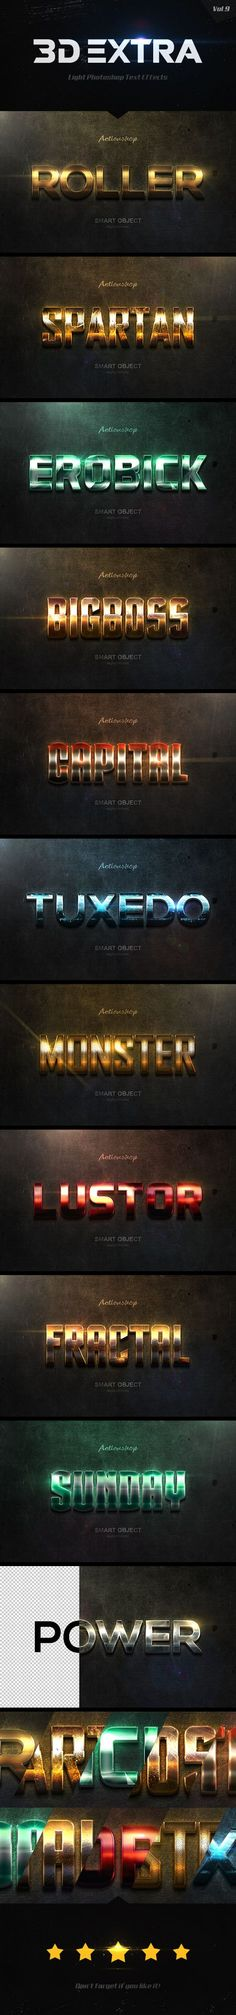 New 3D Extra Light Text Effects Vol.9 - Styles Photoshop